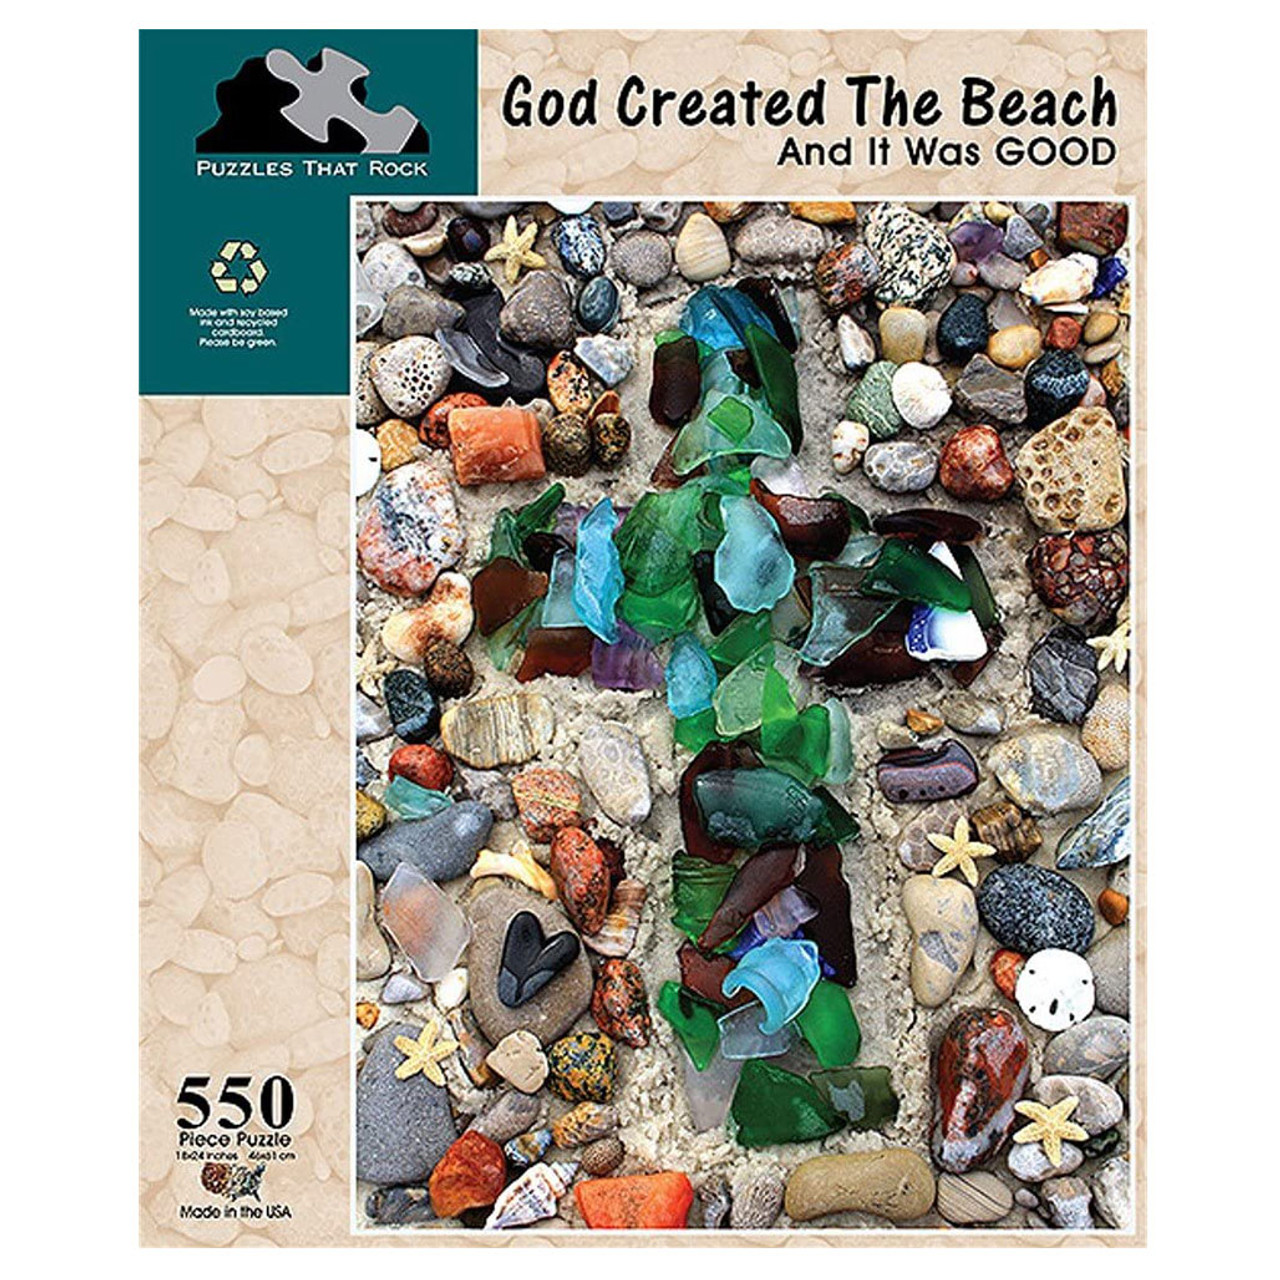 God Created the Beach Jigsaw Puzzle